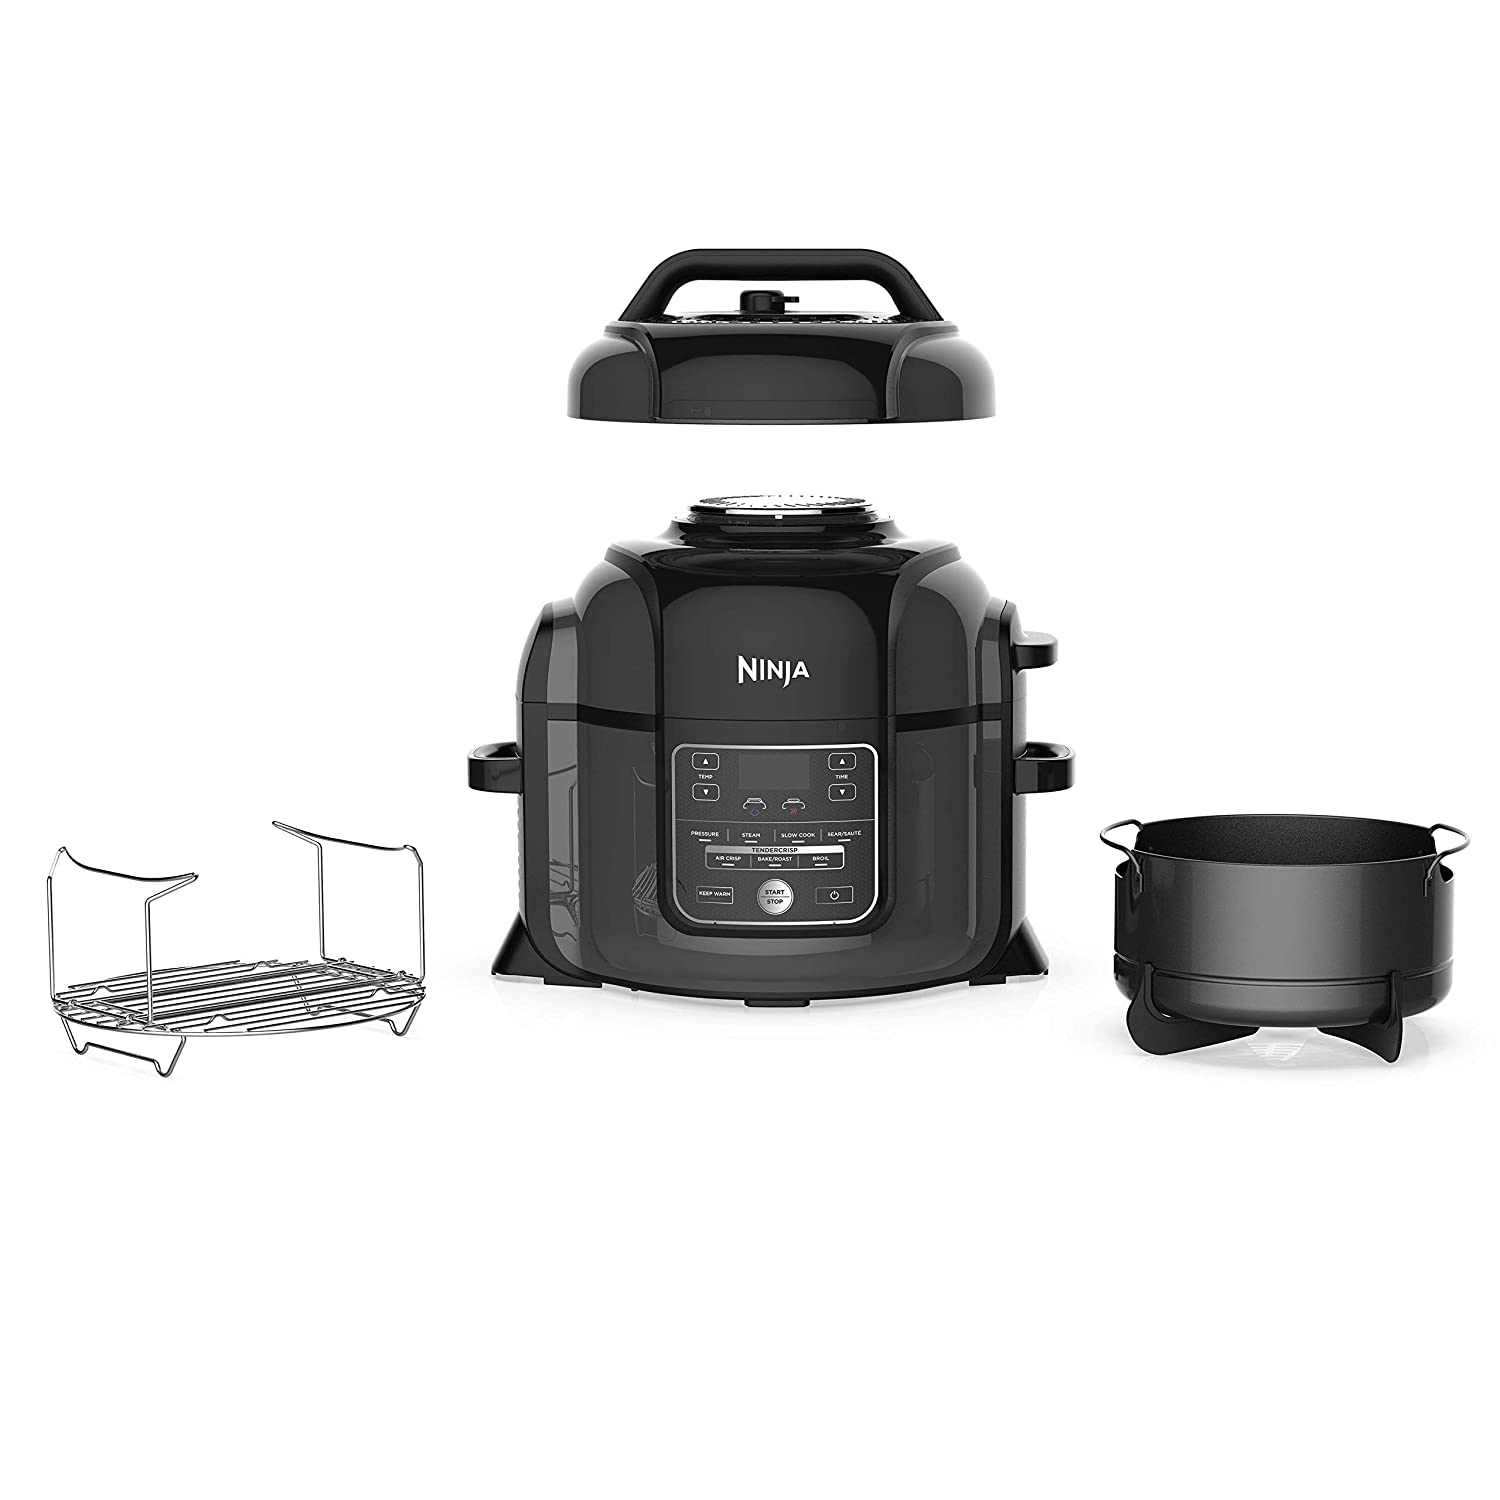 Ninja Foodi 1400-Watt Multi Pressure Cooker, Steamer & Air Fryer w/TenderCrisp Technology Pressure & Crisping Lid 6.5 quart Black/Gray (Renewed)